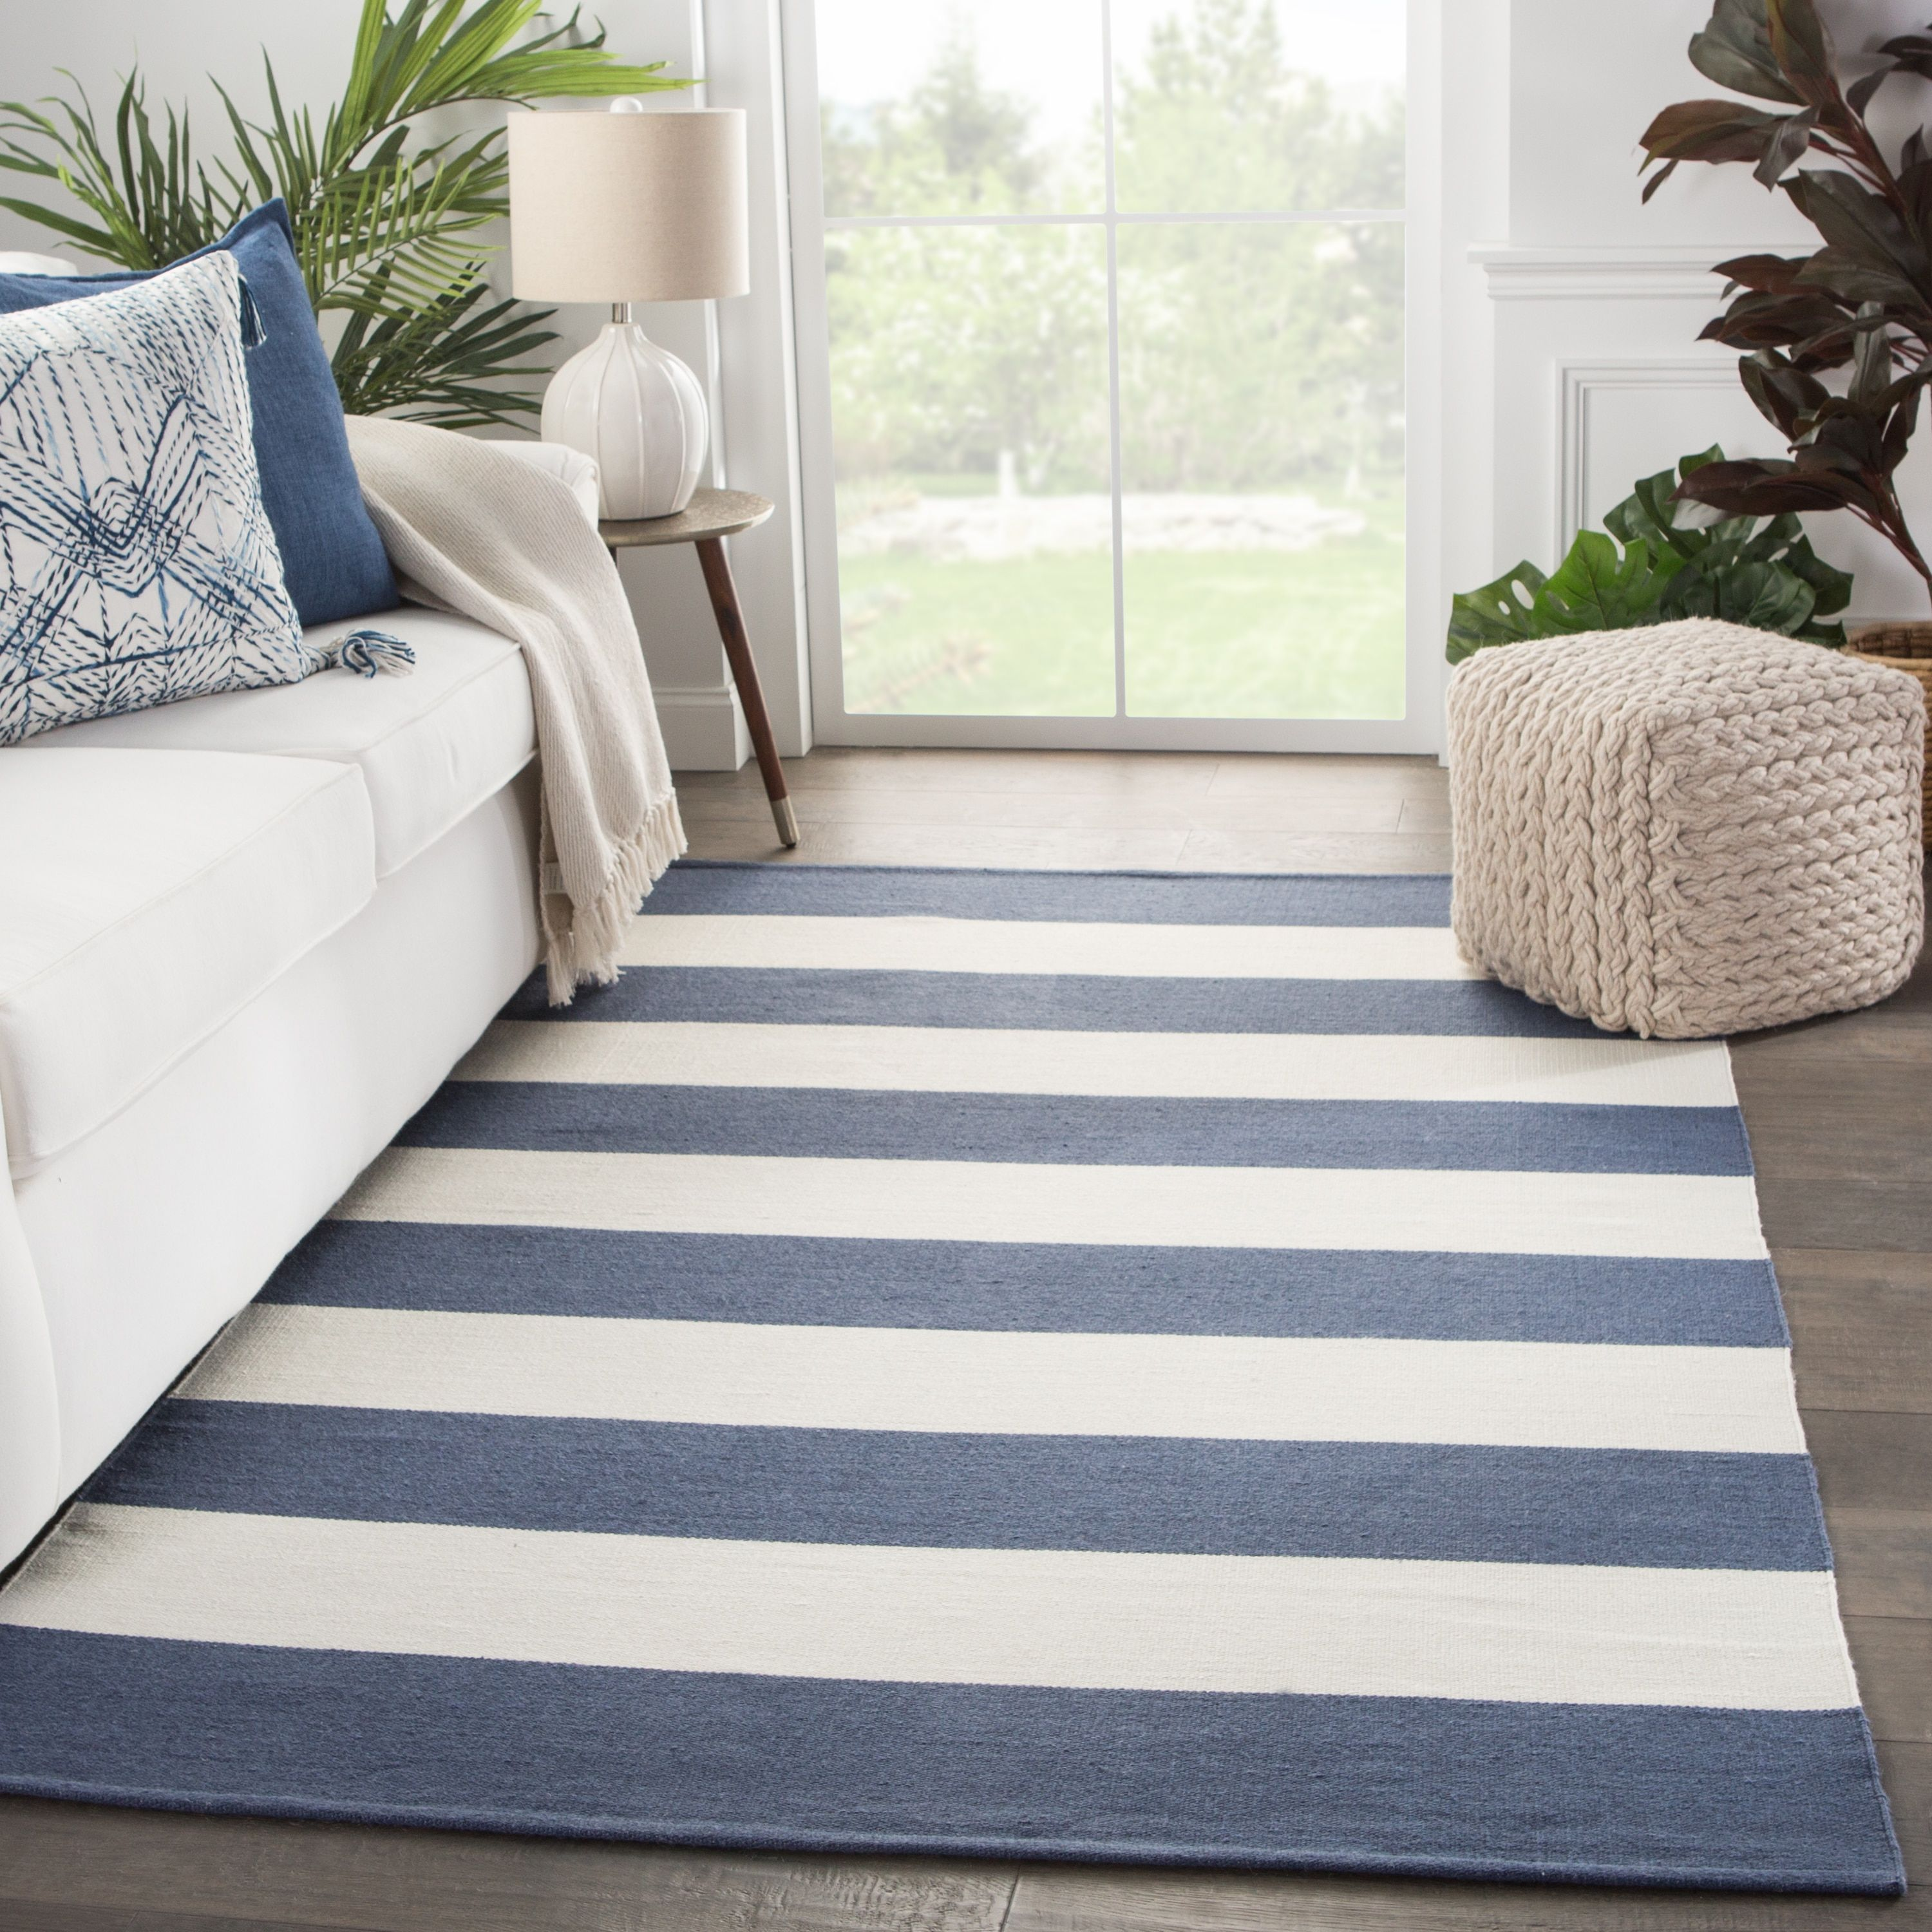 Introducing Our Lanai Ocean Friendly Rugs Beach House Decor Beach House Interior Beach Decor